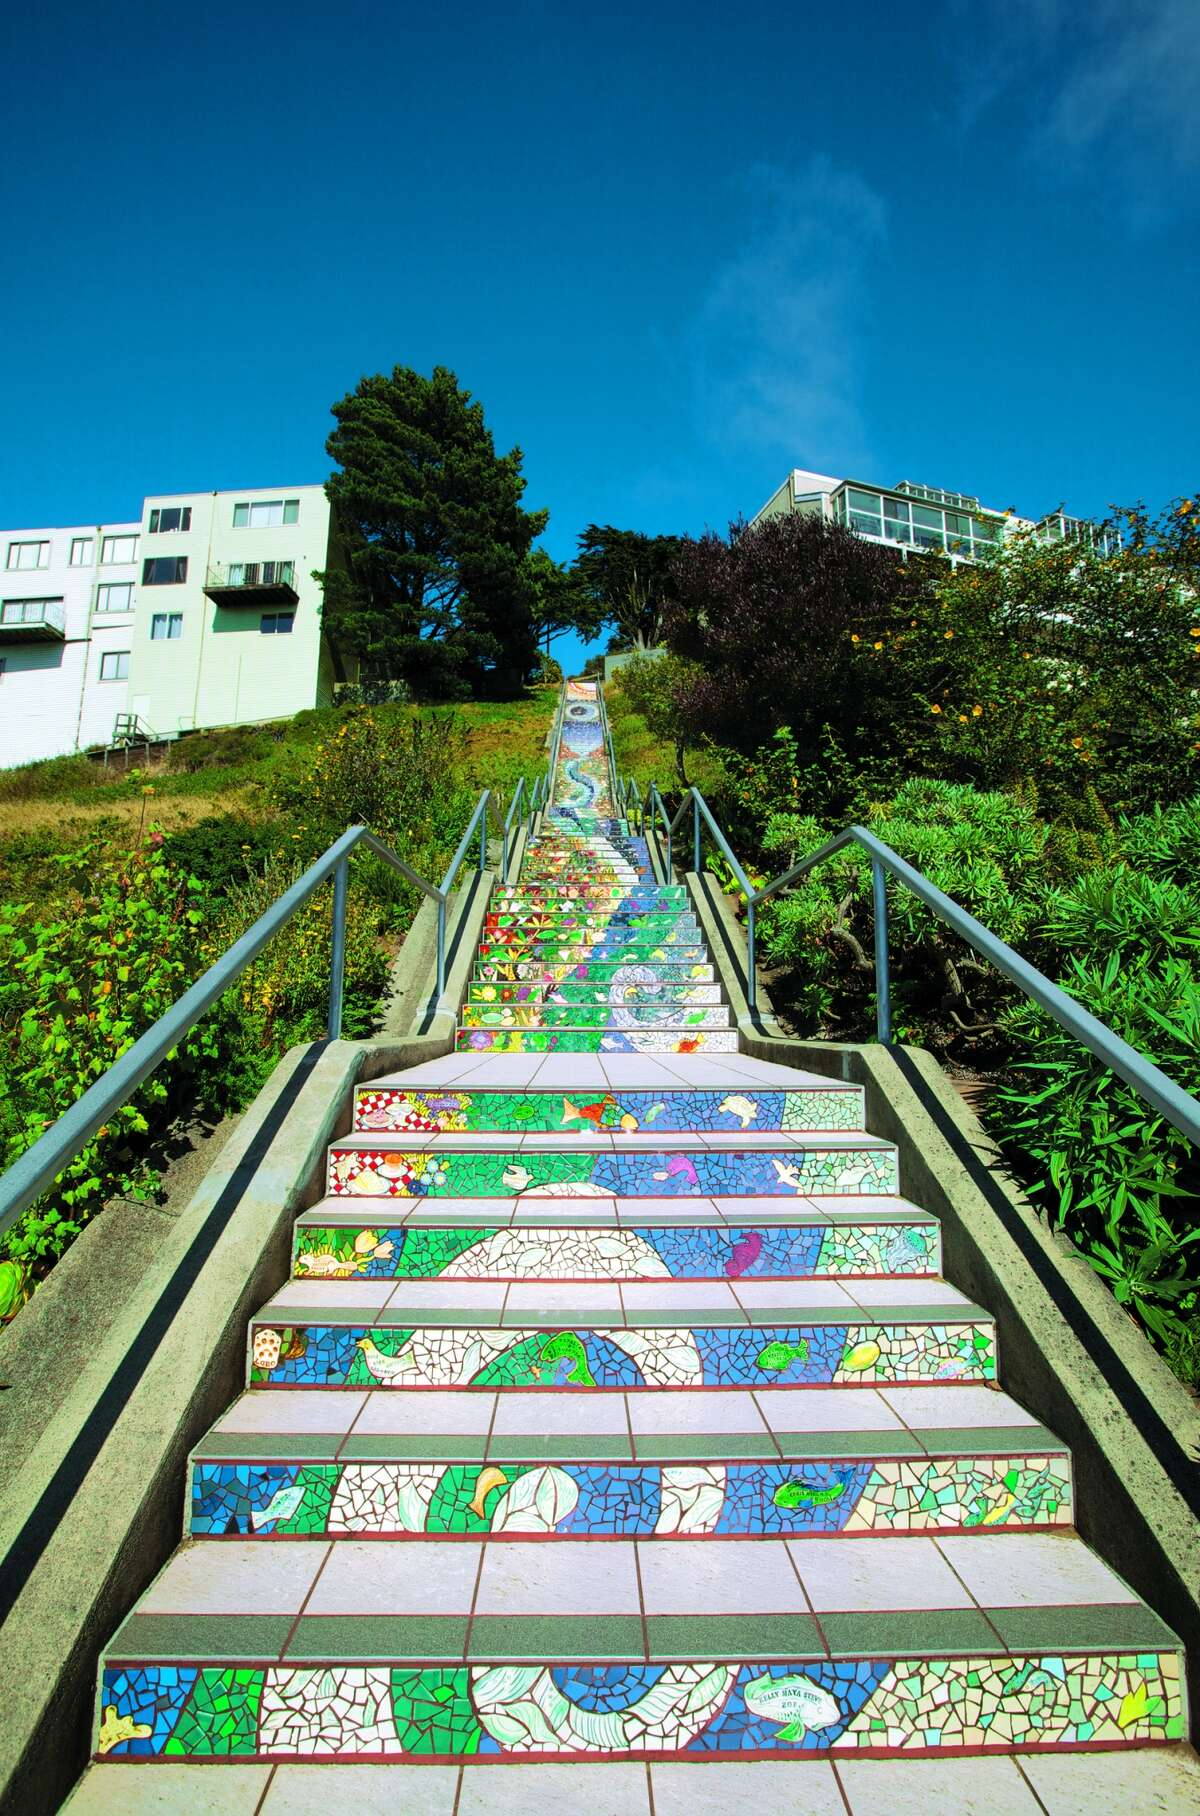 The 16th Avenue Tiled Steps is an impressive community project created in 163 separate panels by different artists, working with volunteers. The steps are an unexpected surprise in the Golden Gate Heights neighborhood. Watch a video on the history of the steps.